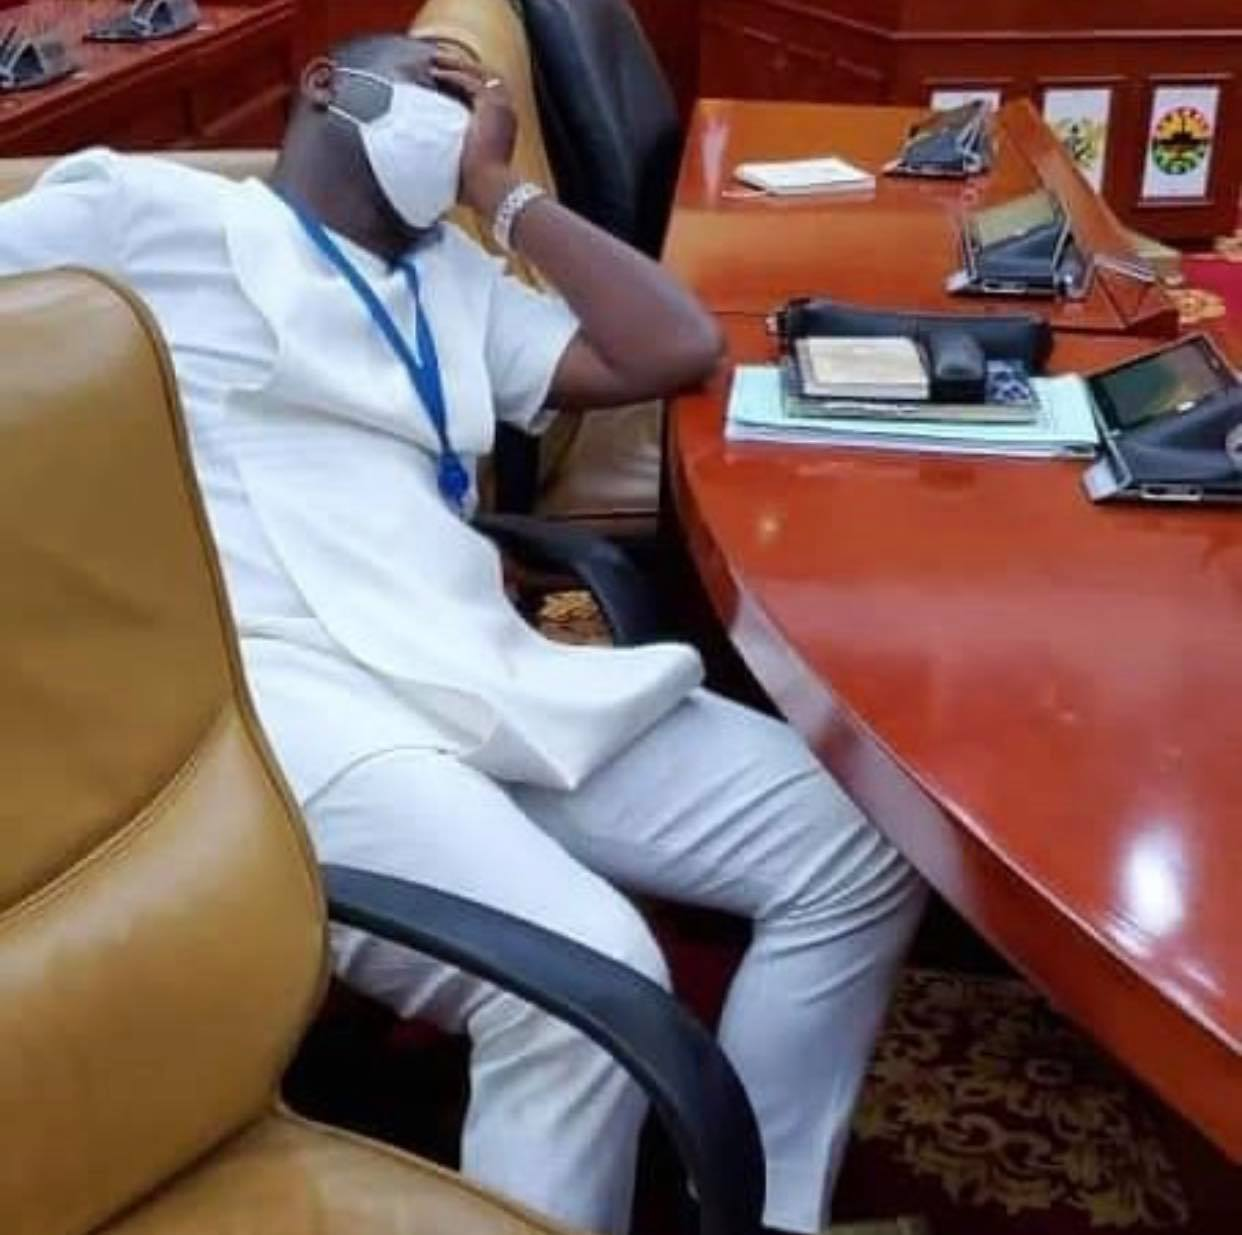 npp%2Bmps1 - Photos Of NPP MP Sleeping In Parliament After Reporting 4am To Take Over Majority Seat Pops Up